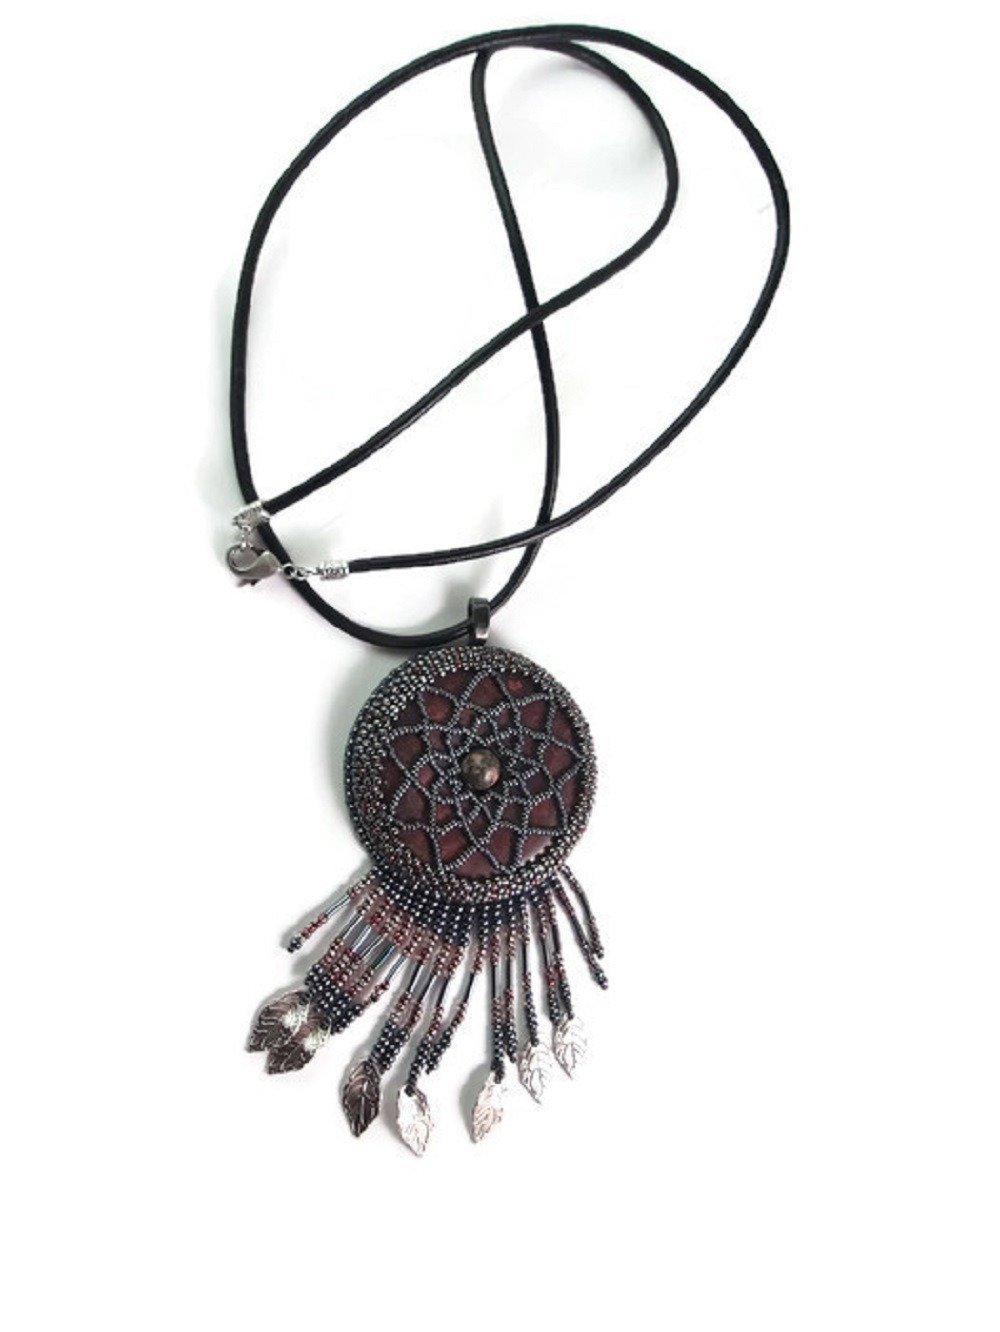 Collier attrape rêves, Sautoir Jaspe Poppy, Sautoir dreamcatcher, Collier long cuir noir